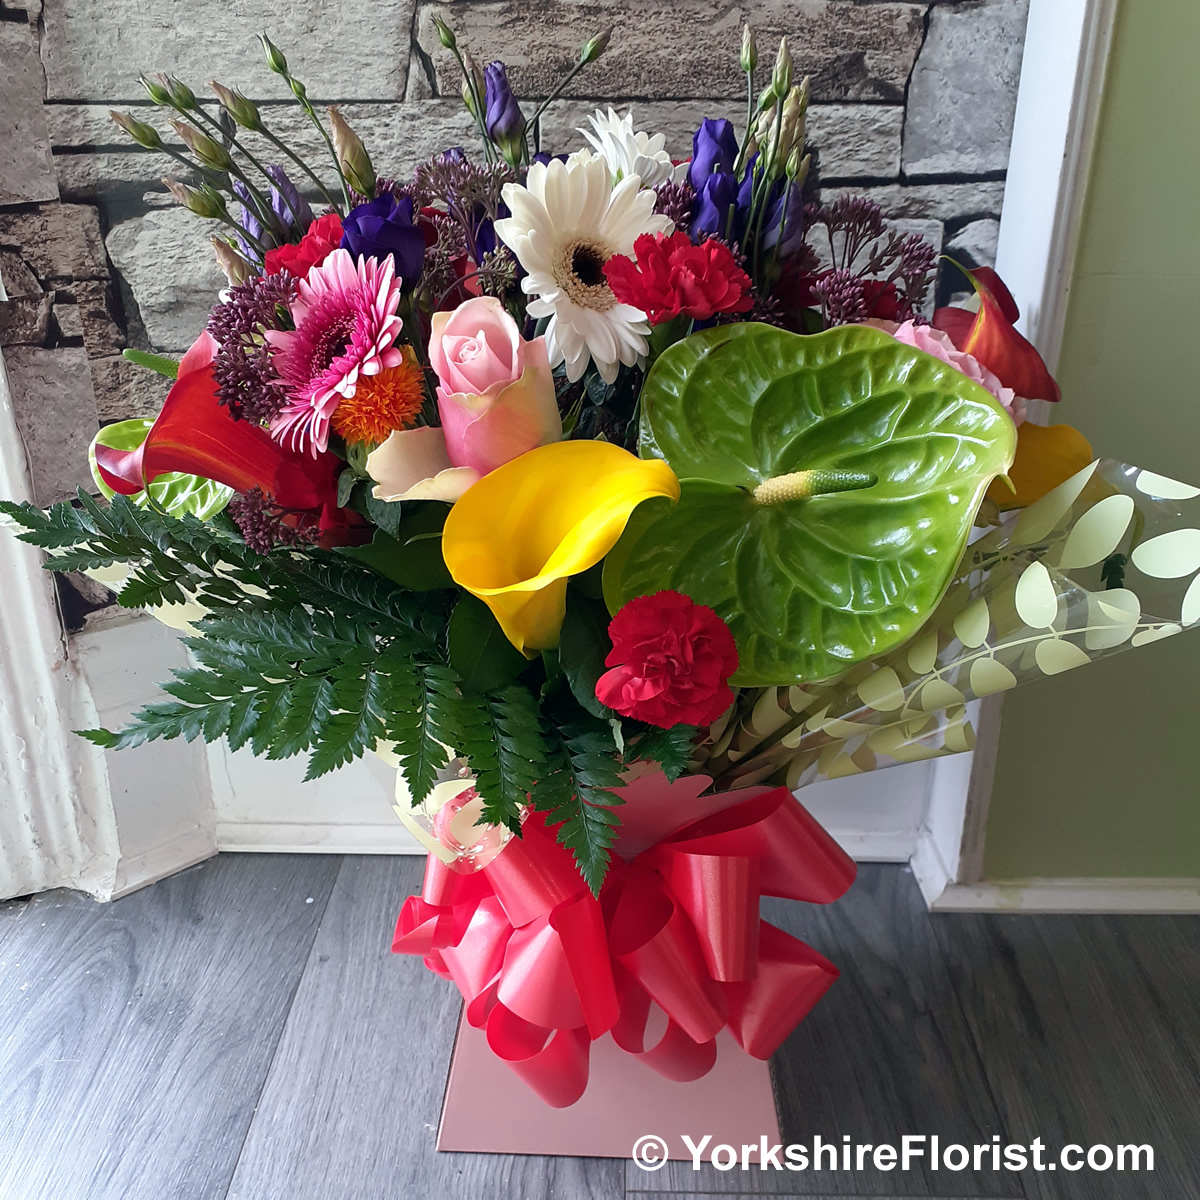 Yorkshire Florist Real And Artificial Flowers For All Occasions Popular Favourites And Custom Made Arrangements Free Local Delivery Available